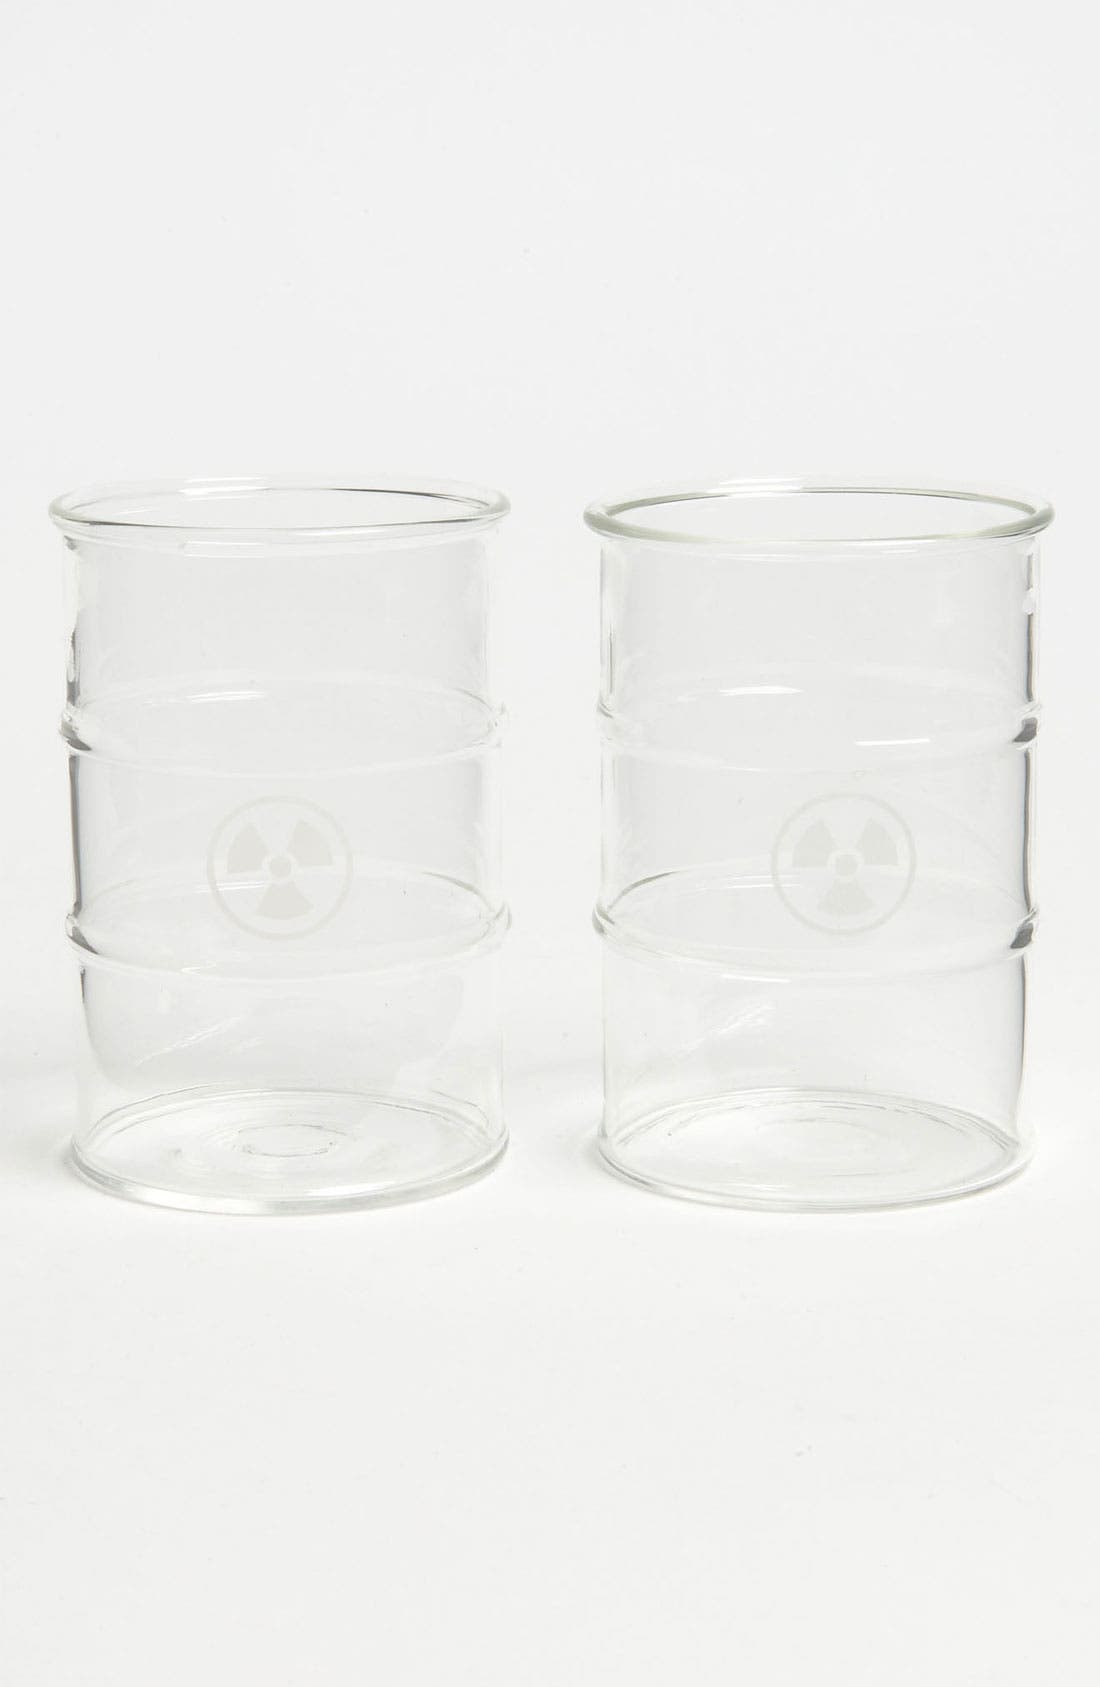 Main Image - Fred & Friends 'Polluted' Glasses (Set of 2)